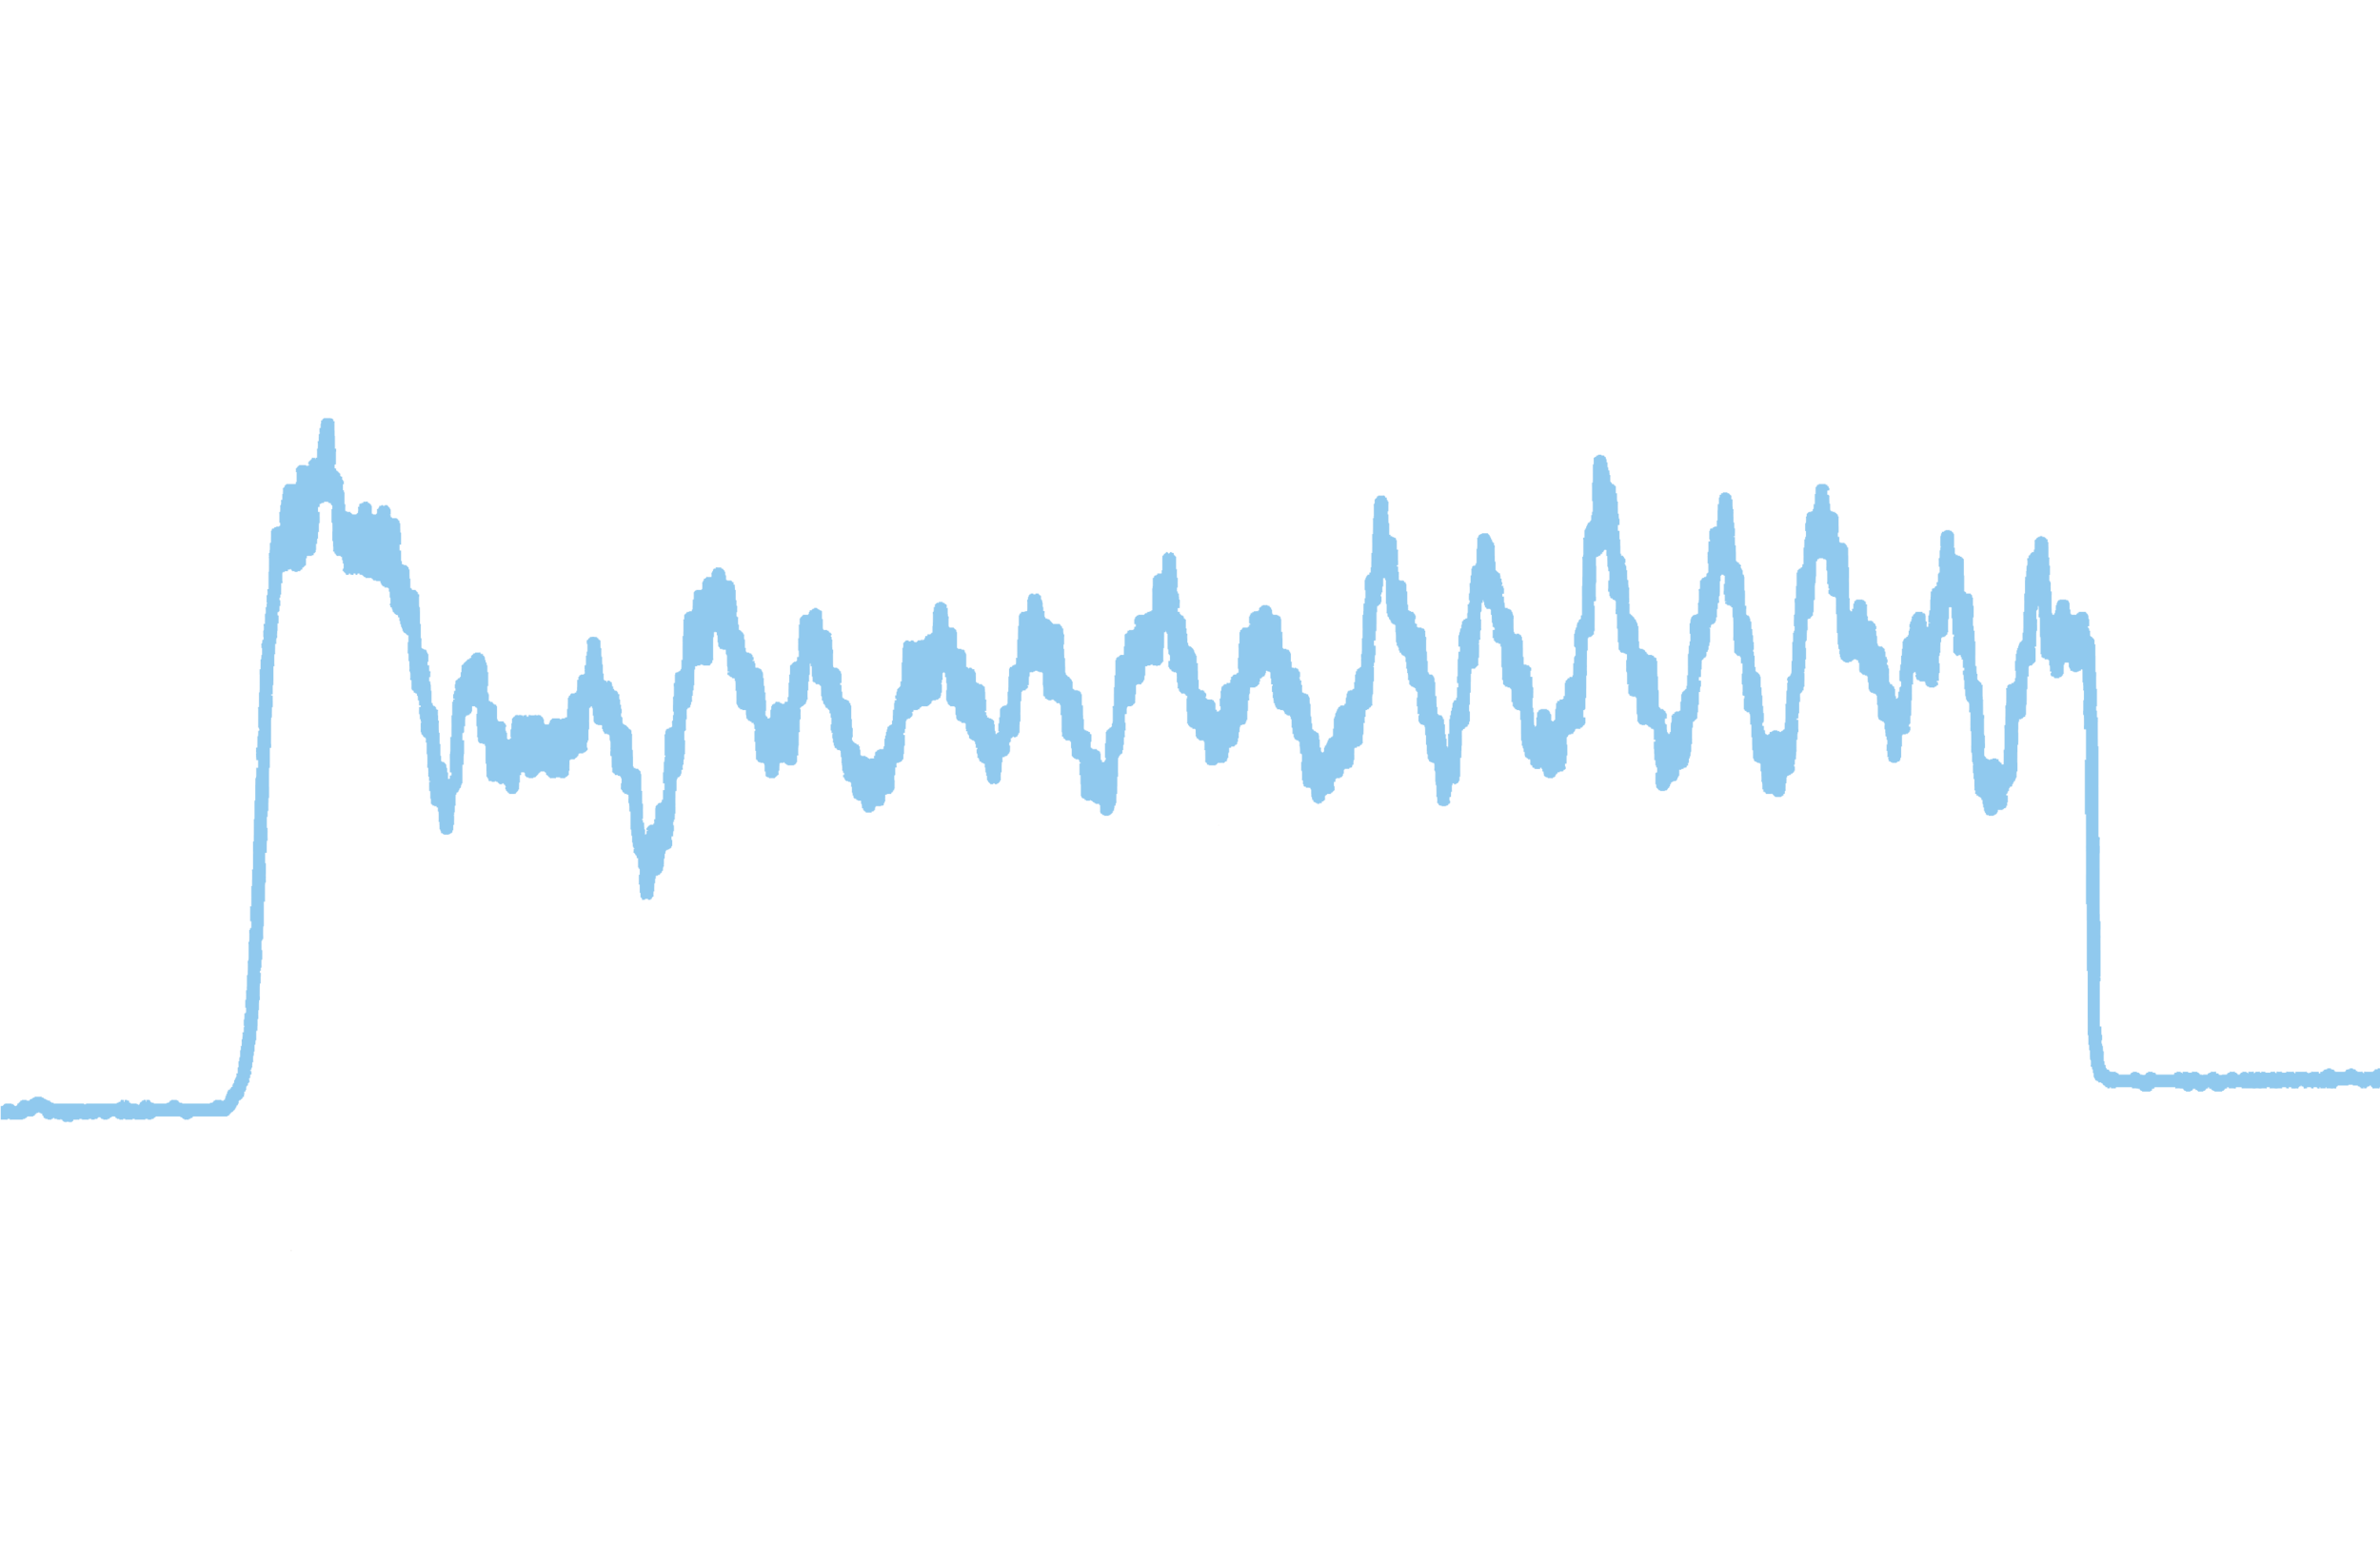 AI Monitoring - Knowing which utilities are being used, when and where they're being used, drastically improves the impact individuals have on the environment. Using artificial intelligence, this data can be disaggregated into specific appliances or faucets where it starts to have a profound effect. The image shows the electricity usage of a washing machine over the course of a load.